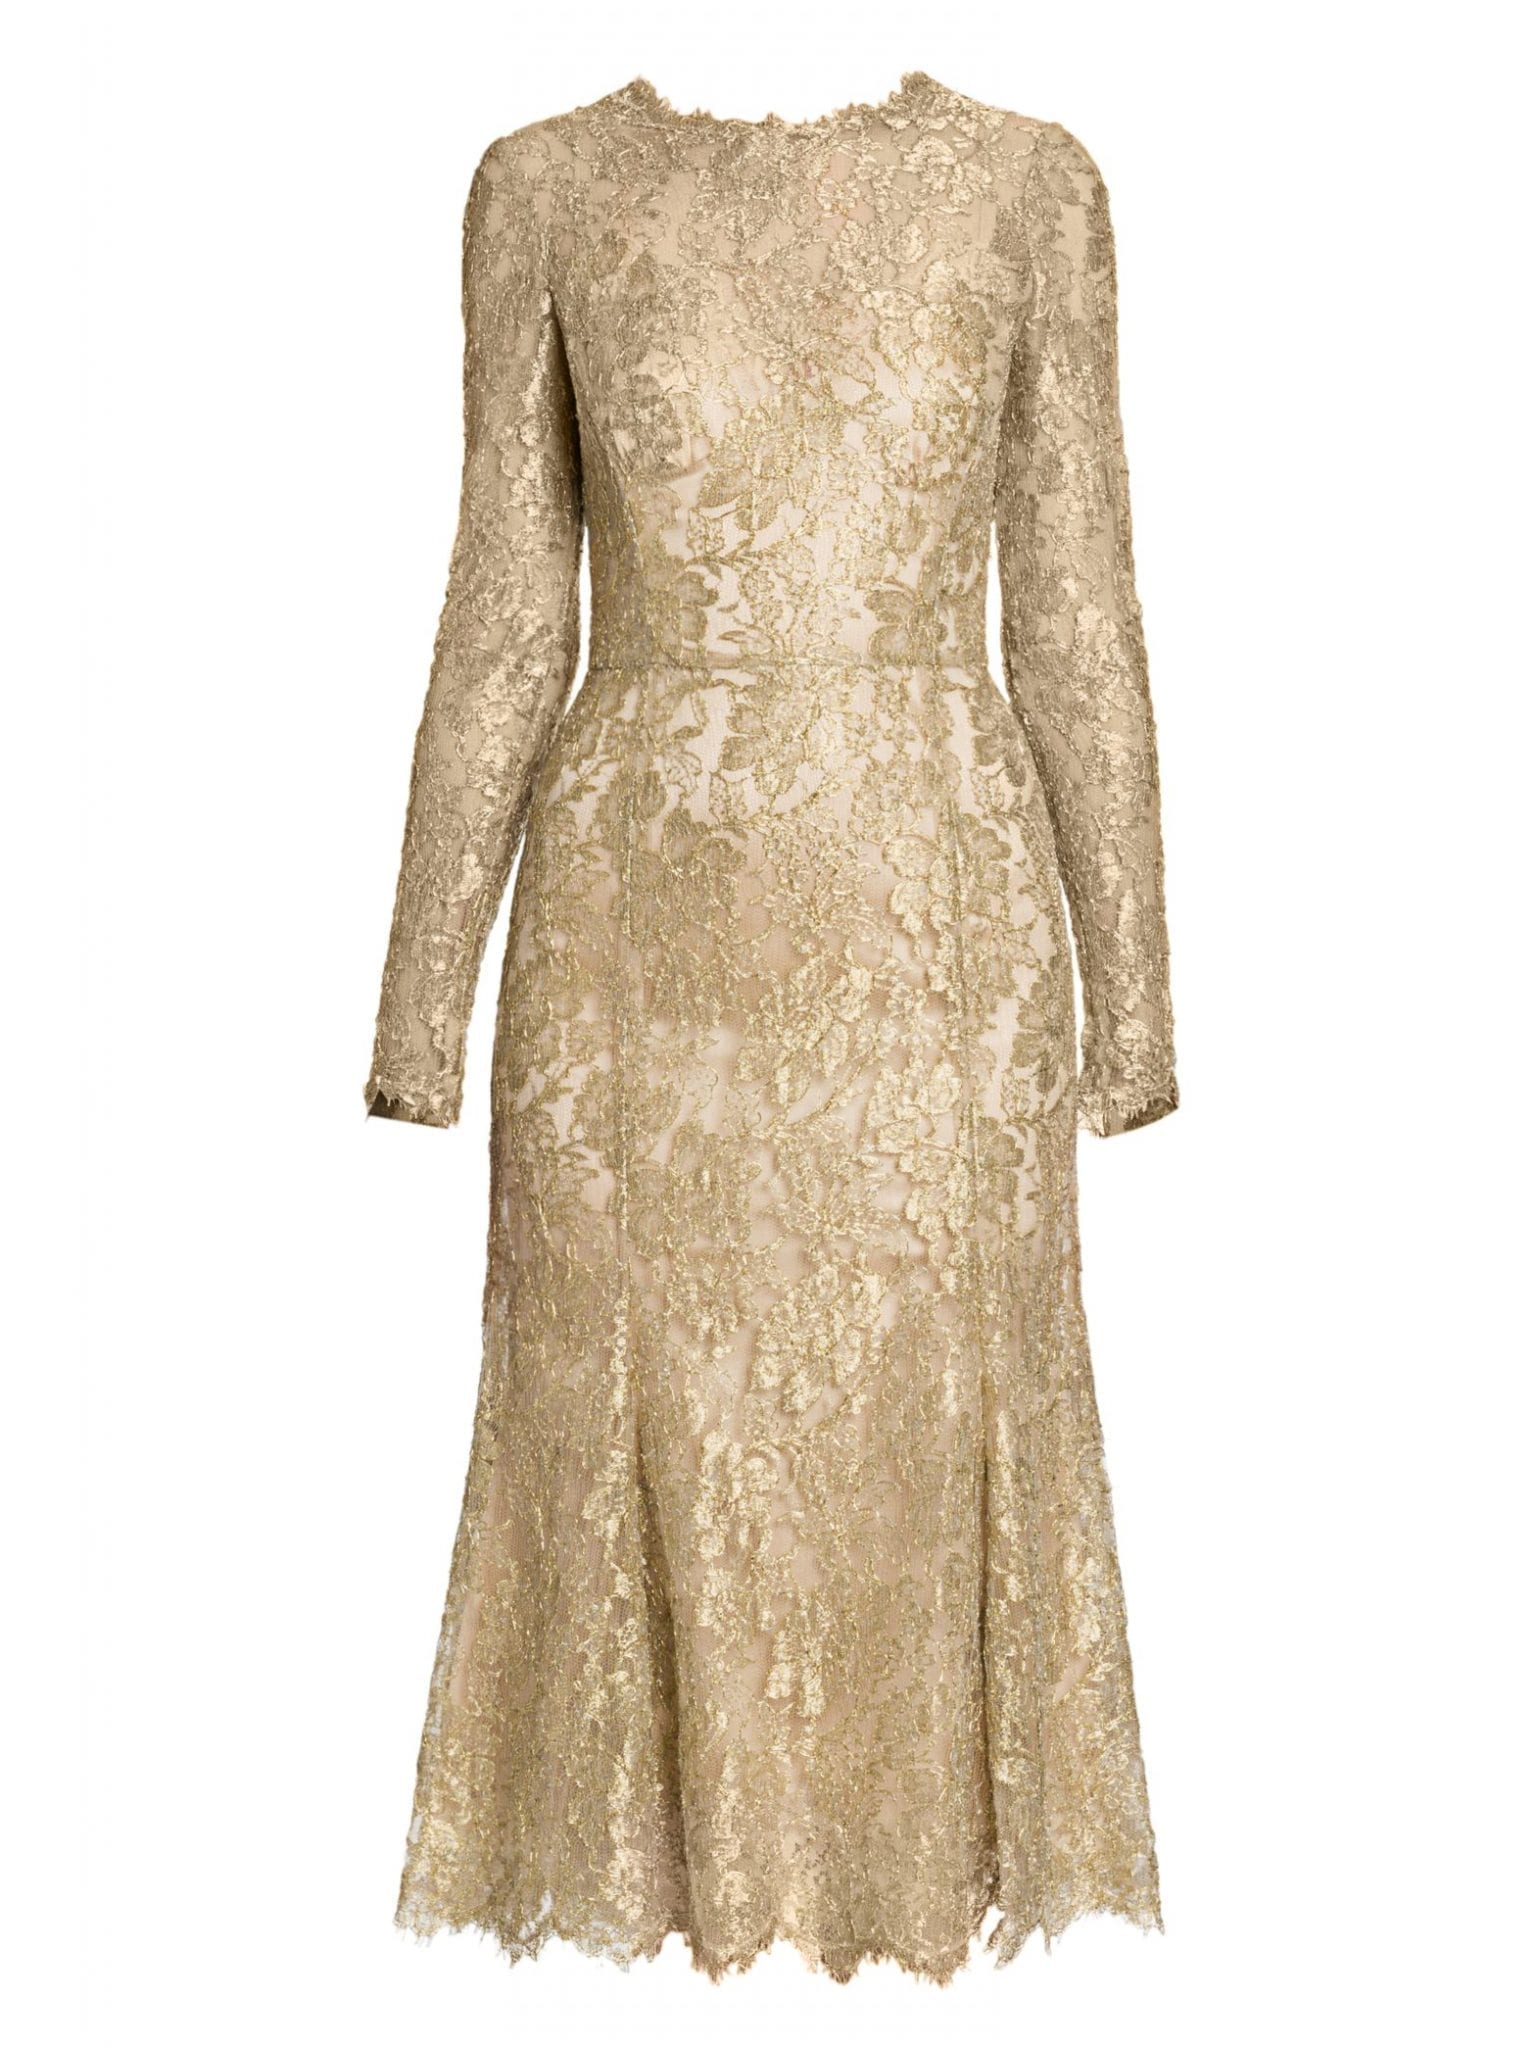 DOLCE & GABBANA Goldtone Lace Fit-&-Flare Dress